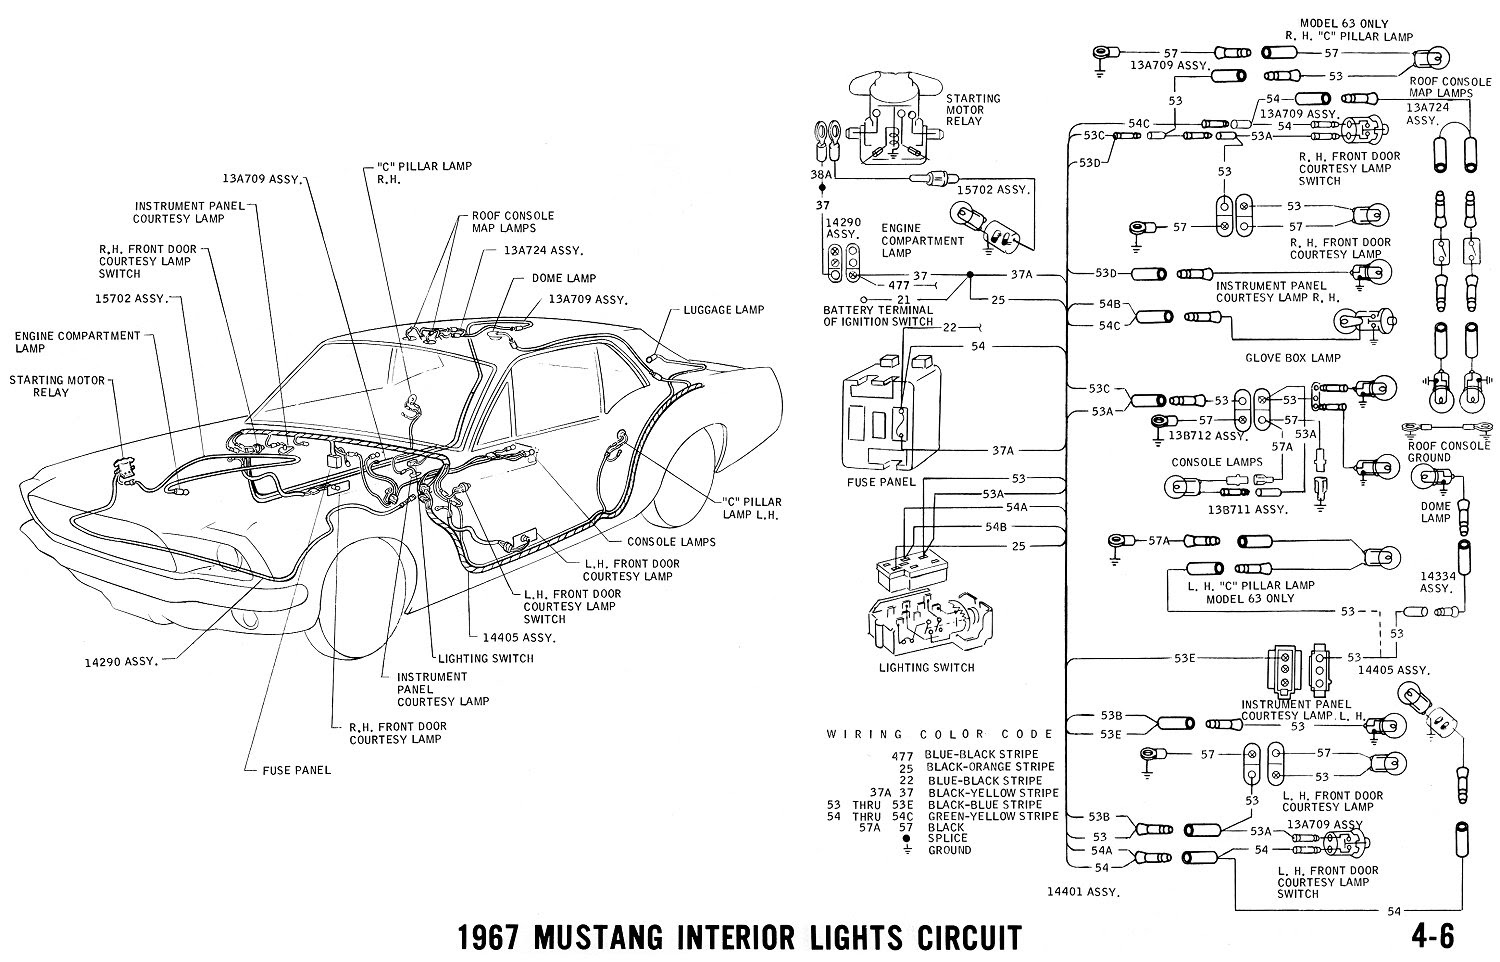 1967 Mustang Coil Wiring Diagram Wiring Diagram View A View A Zaafran It